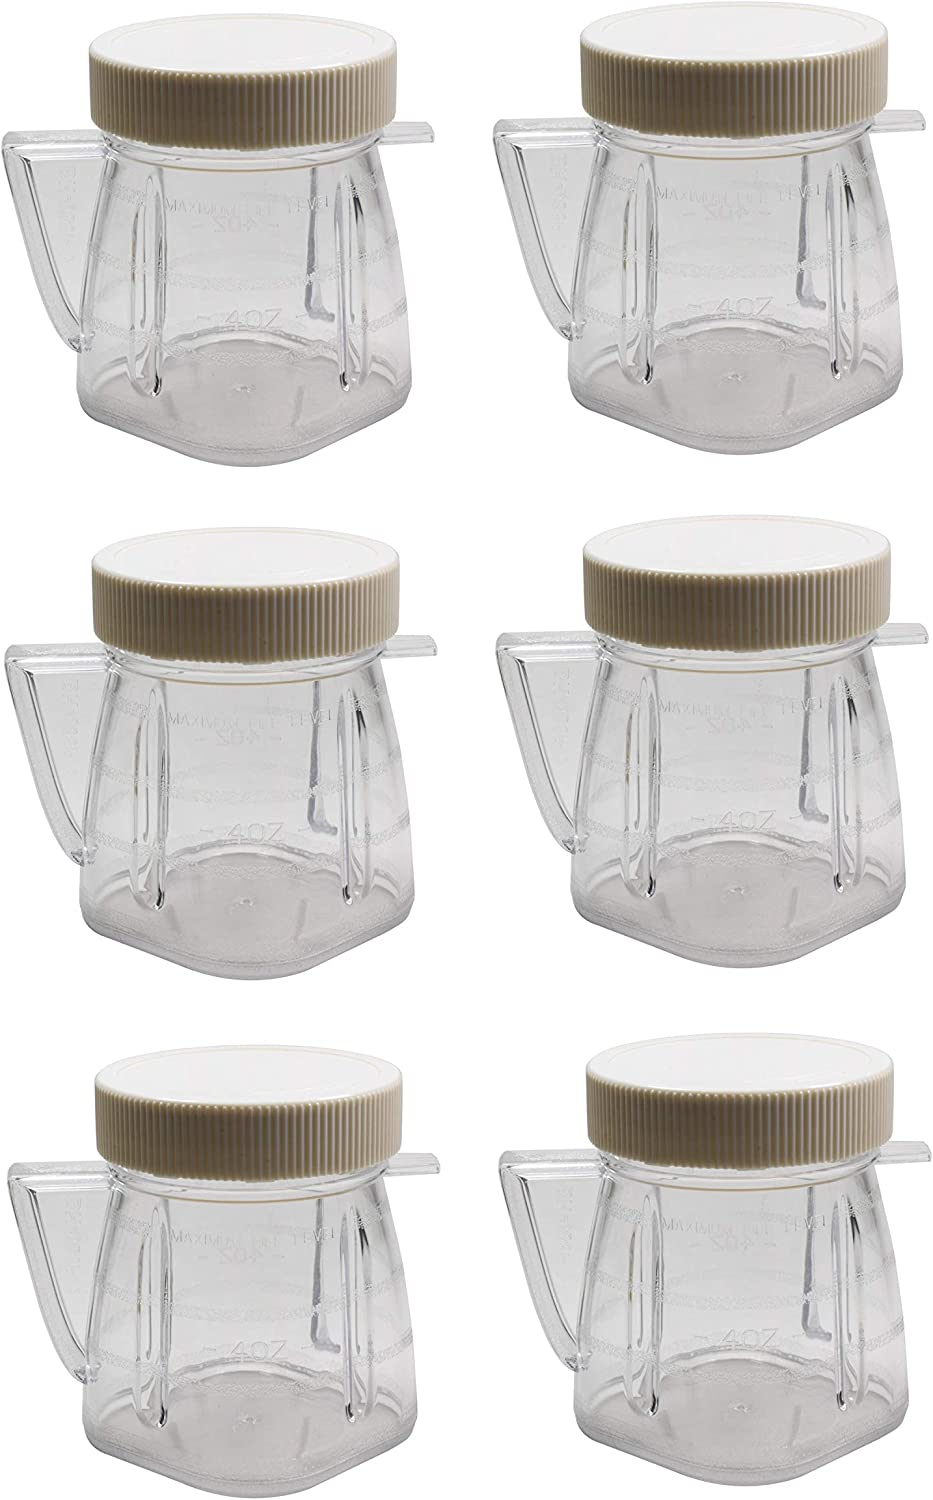 Univen 8 Oz Mini Blender Jar With Sealed Lid for Oster & Osterizer Blenders 6 Pack